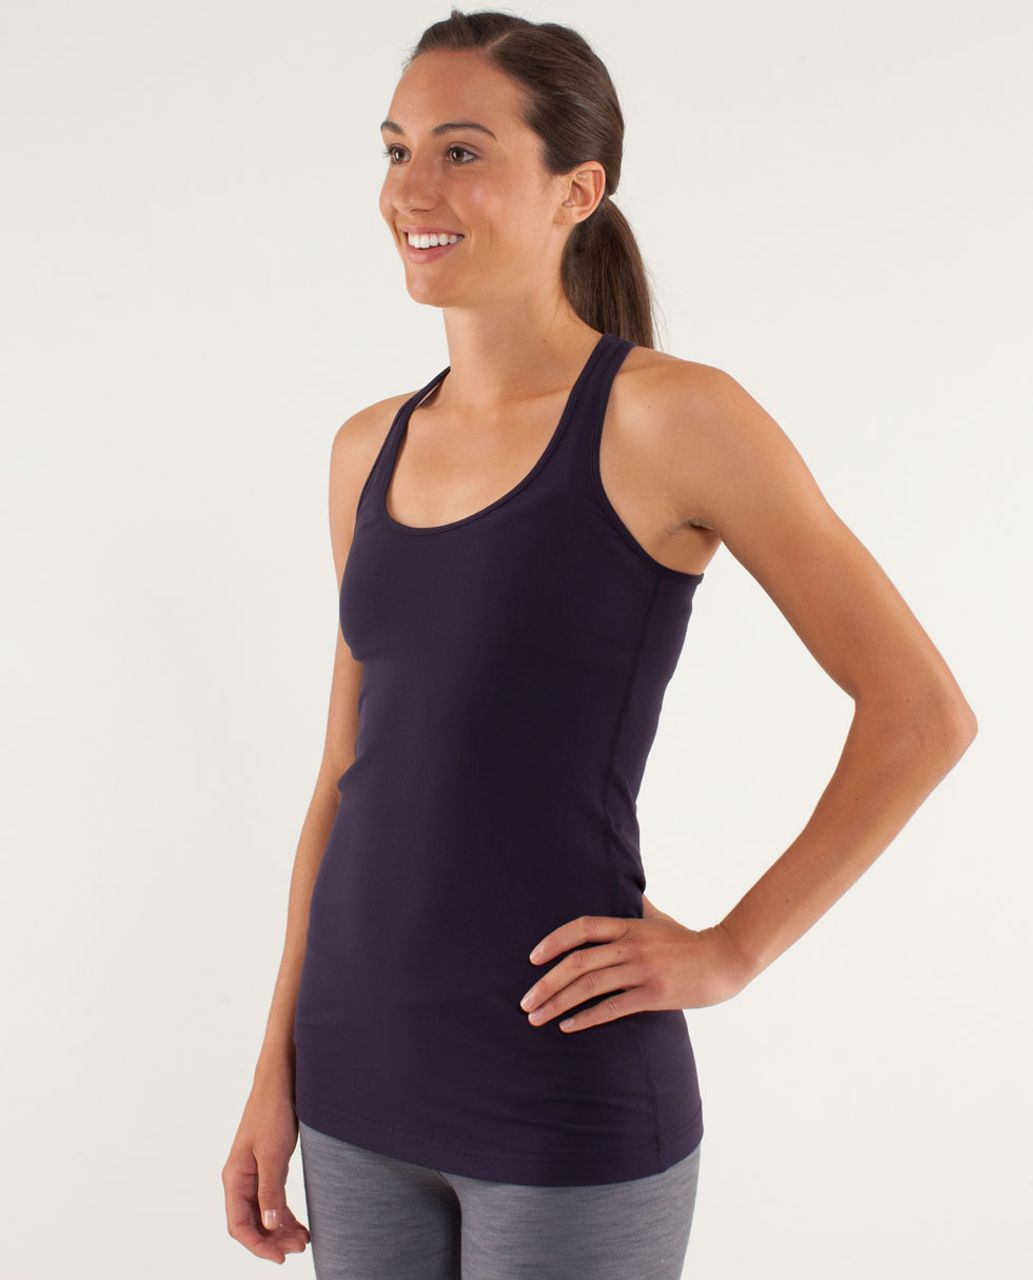 Lululemon Cool Racerback - Black Swan